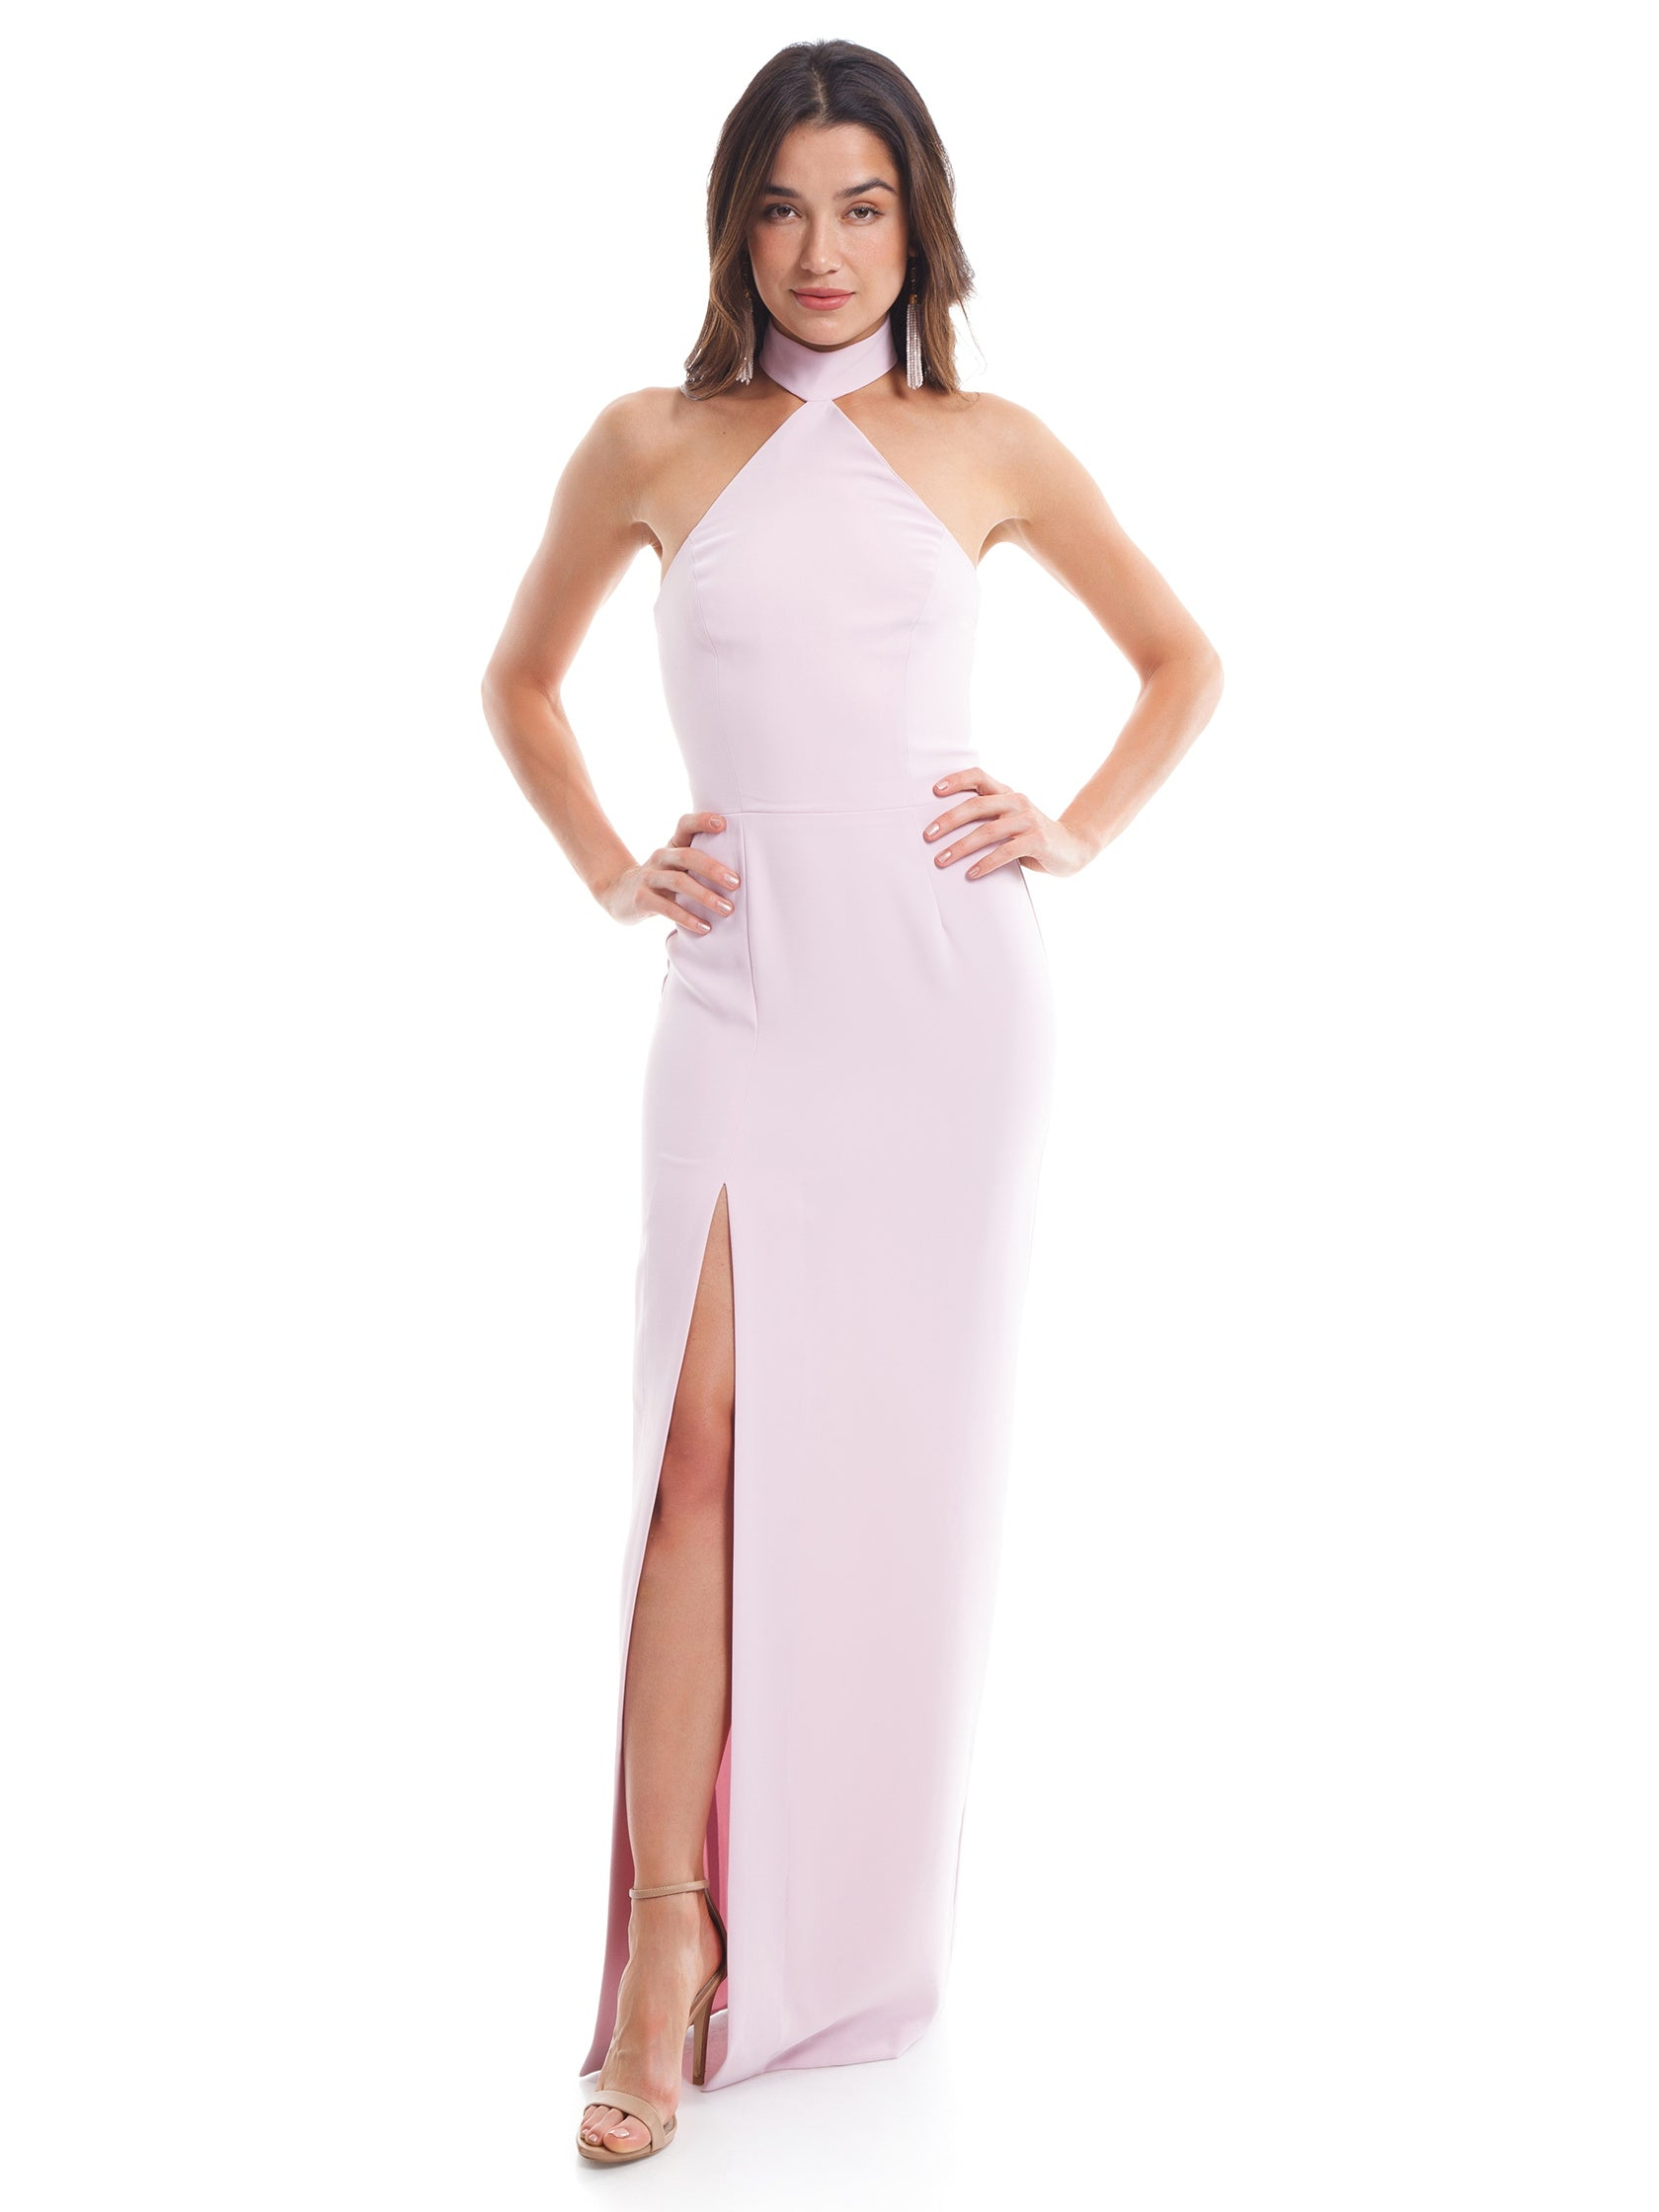 Women outfit in a dress rental from Amanda Uprichard called Queen Gown 9ae05eced4